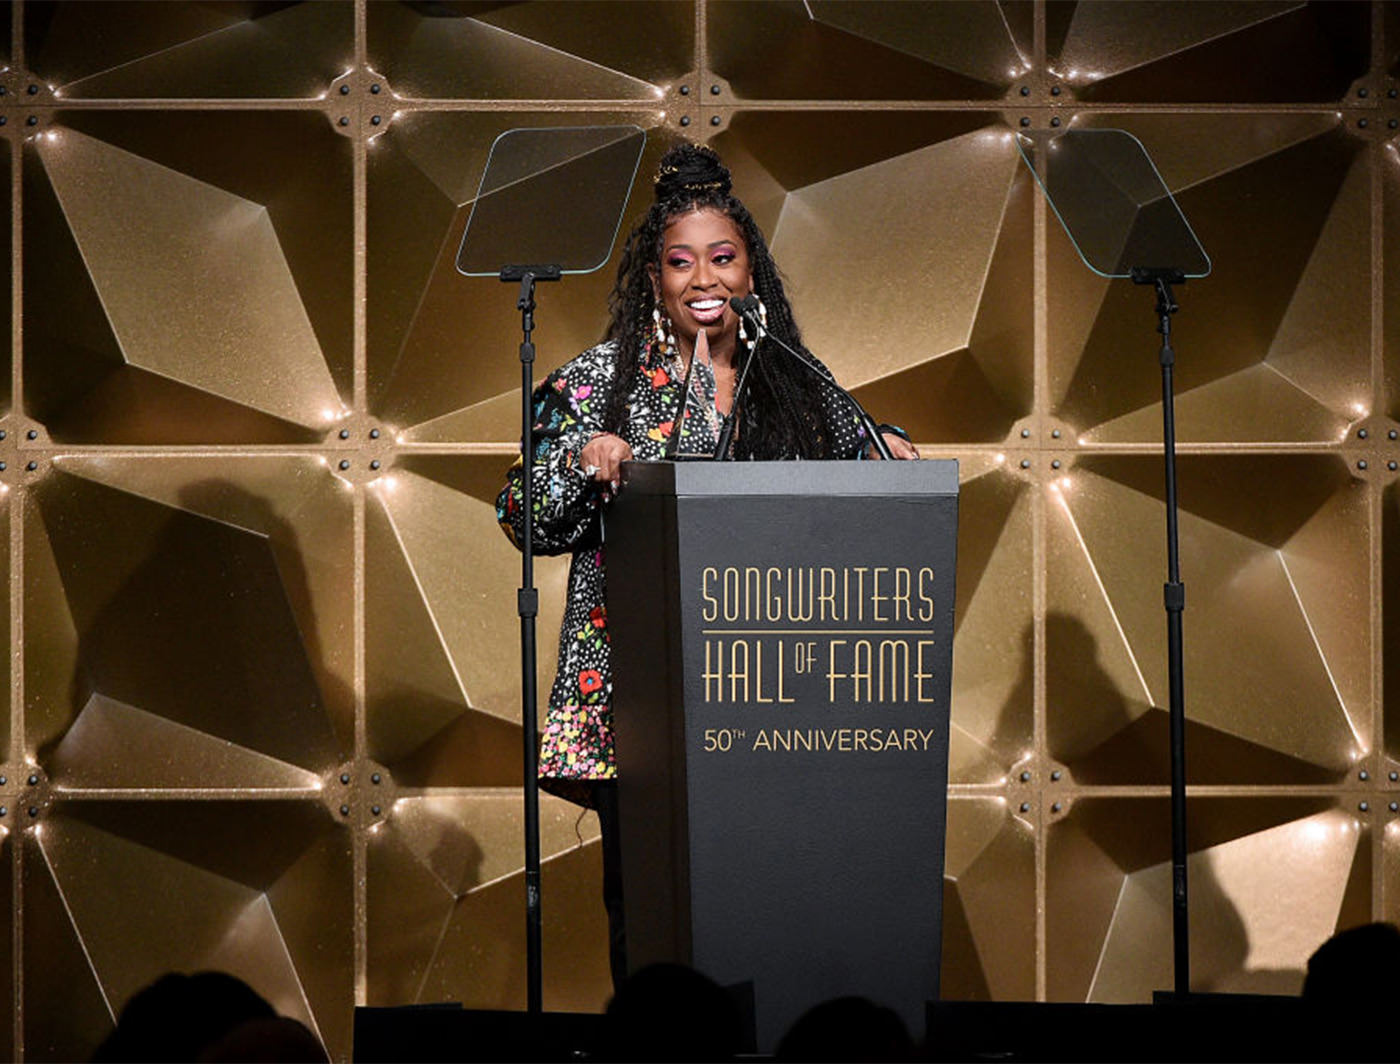 Premium Gold Zeddit Panels created a dazzling backdrop behind Missy Elliot at the Songwriters Hall of Fame